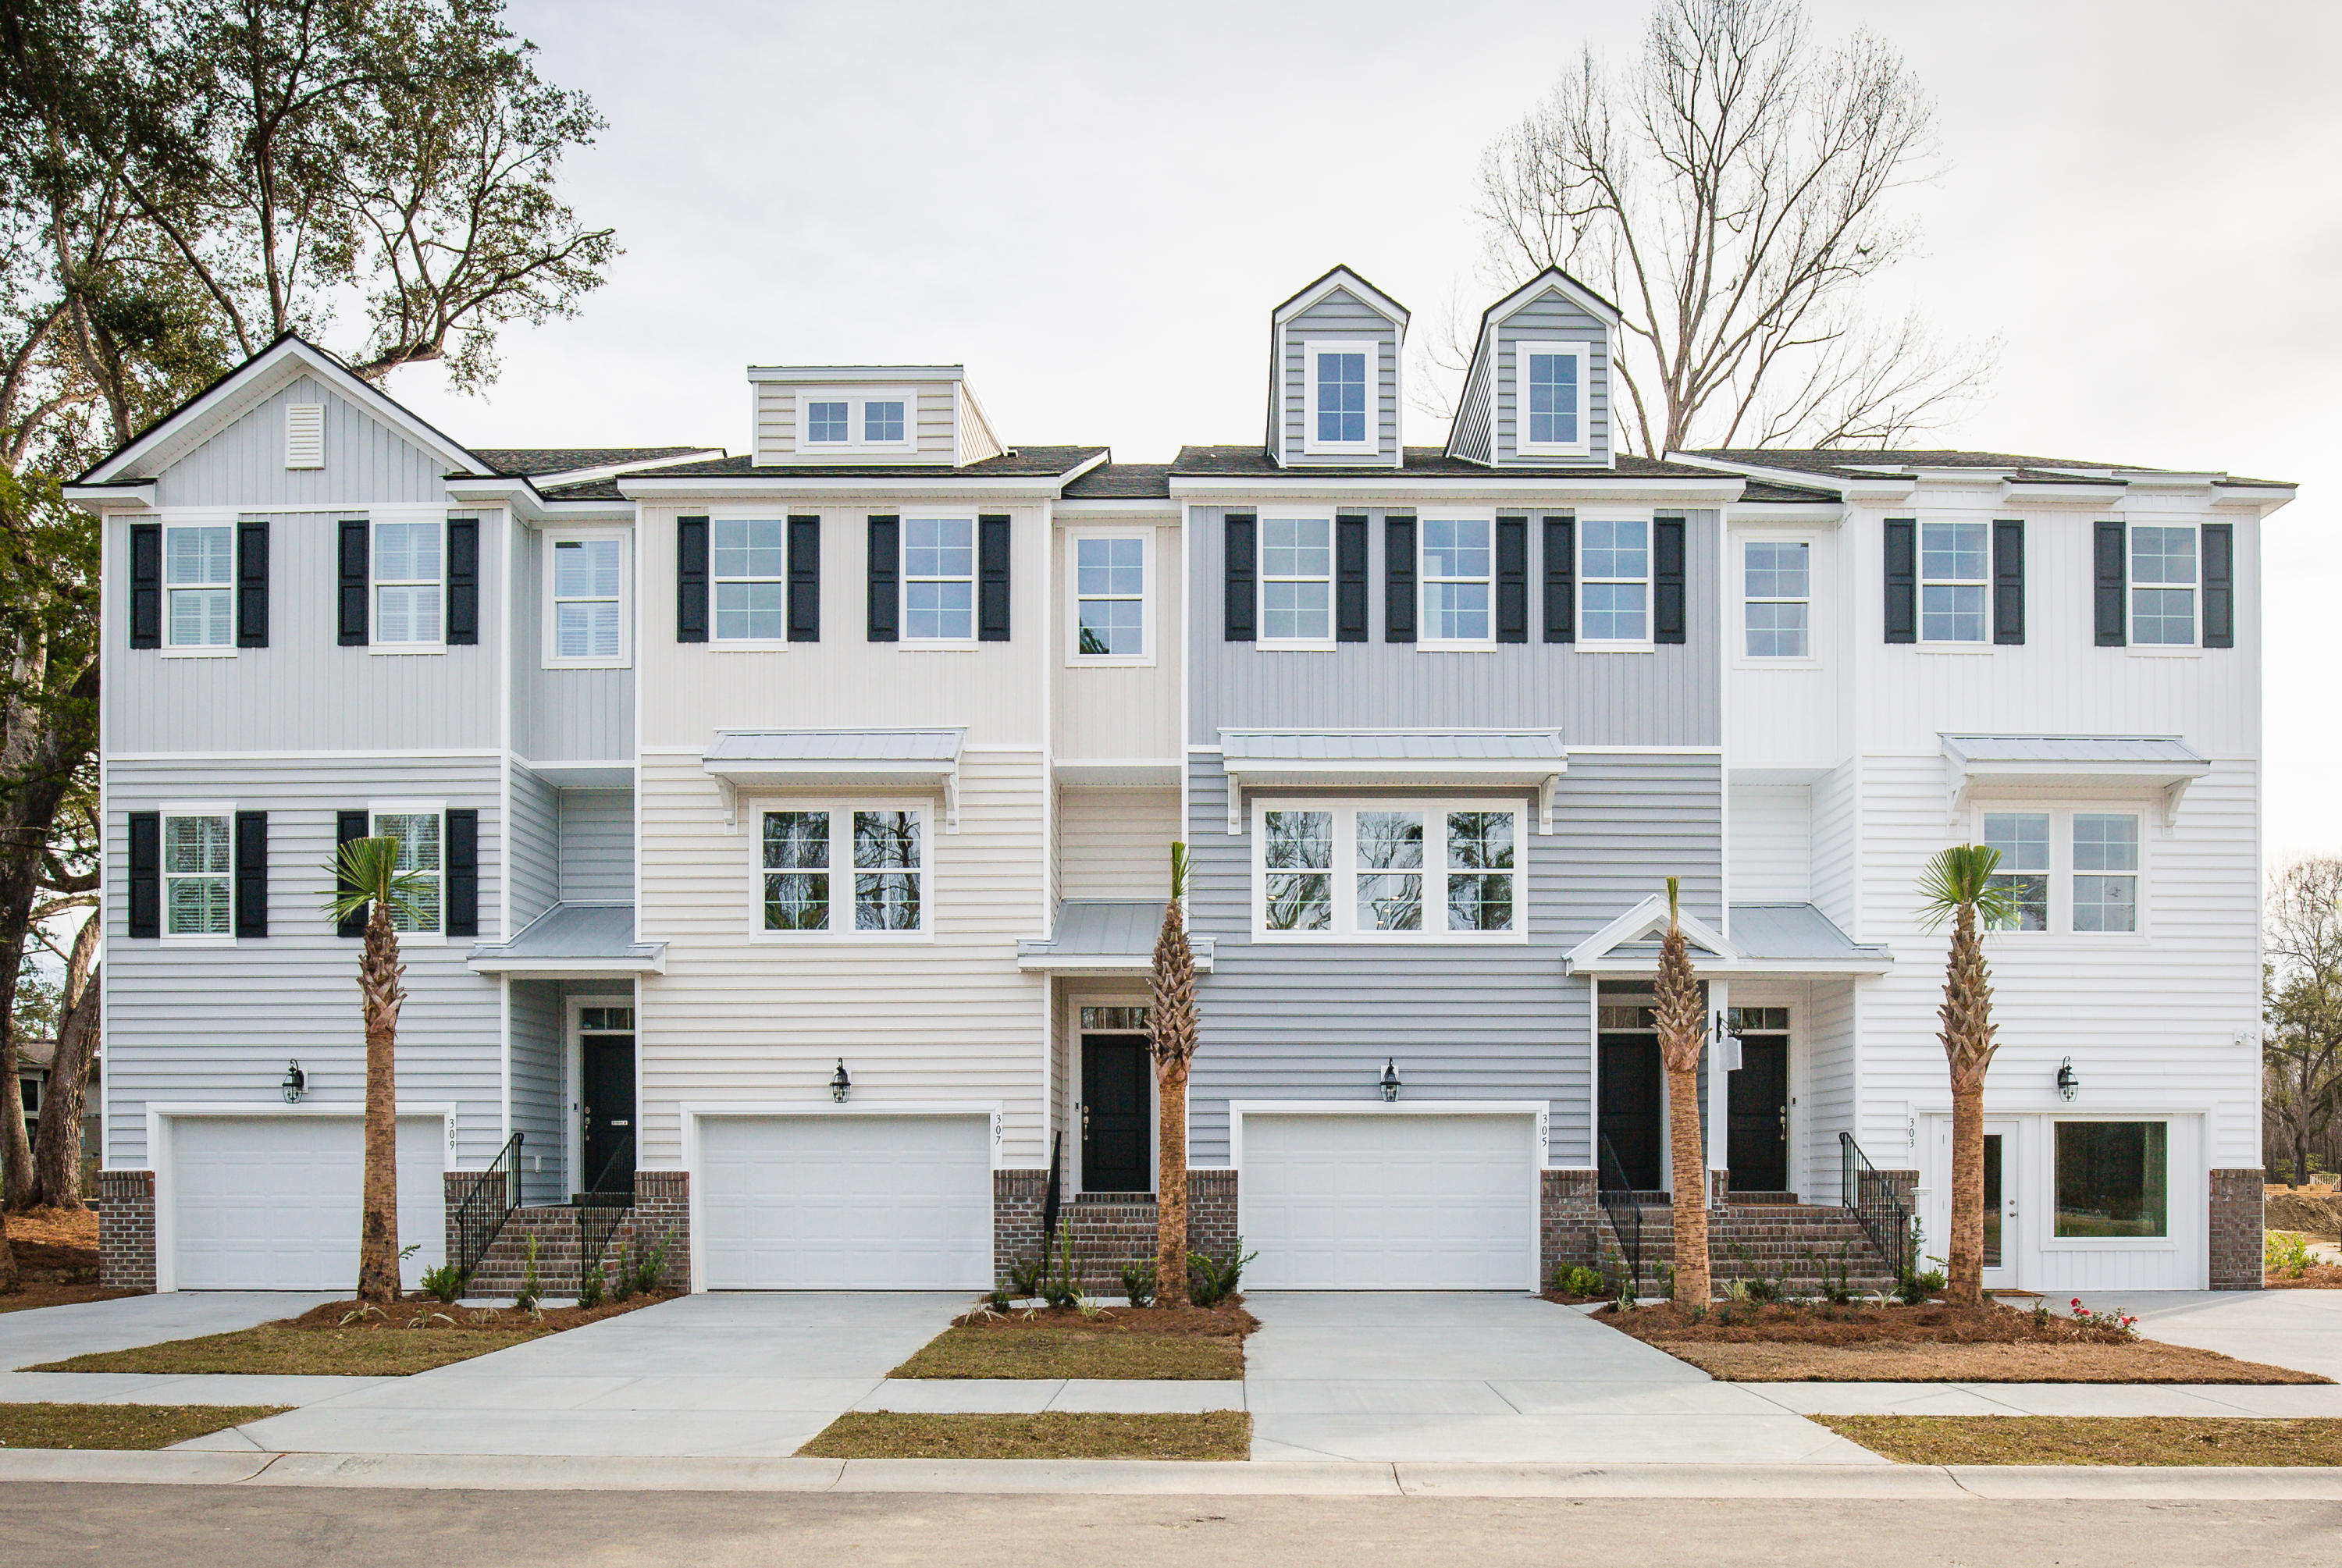 Grand Terrace Homes For Sale - 132 Claret Cup, Charleston, SC - 0